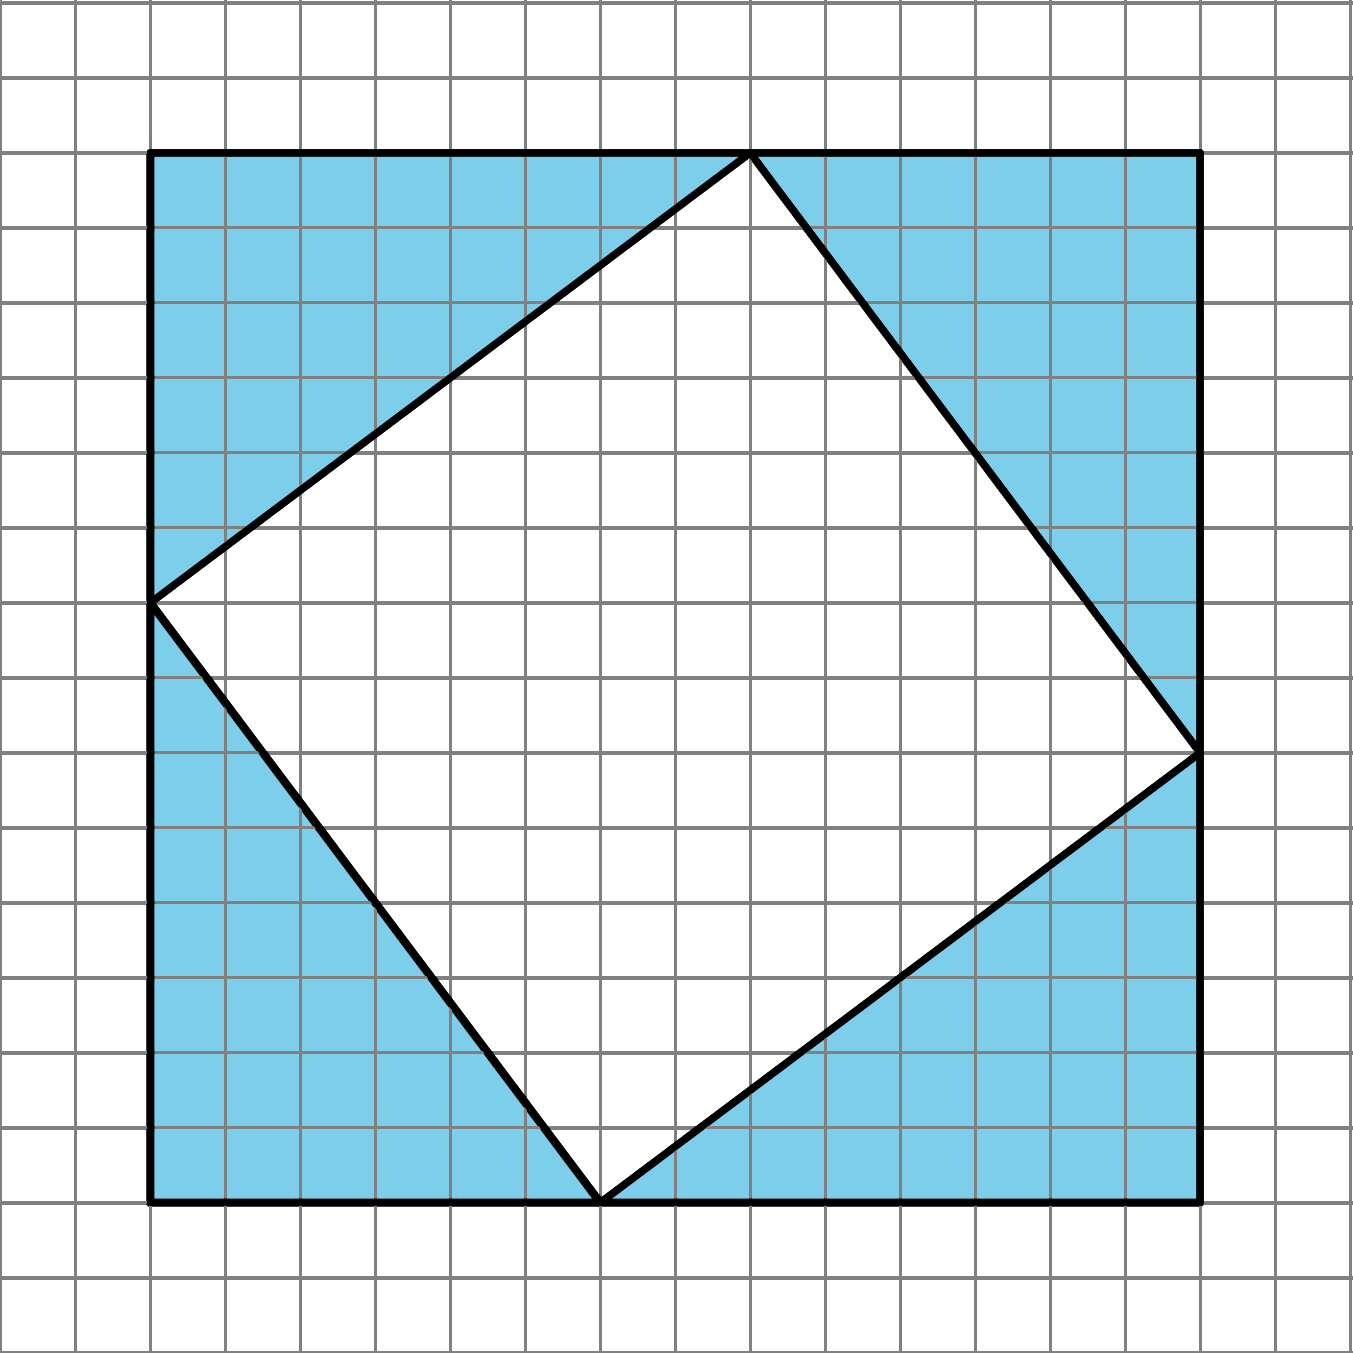 A square with side lengths of 14 units on a square grid. there is a second square inside the square. Each of the vertices of the inside square divides the side lengths of the large square into two lengths: 8 units and 6 units creating 4 right triangles.